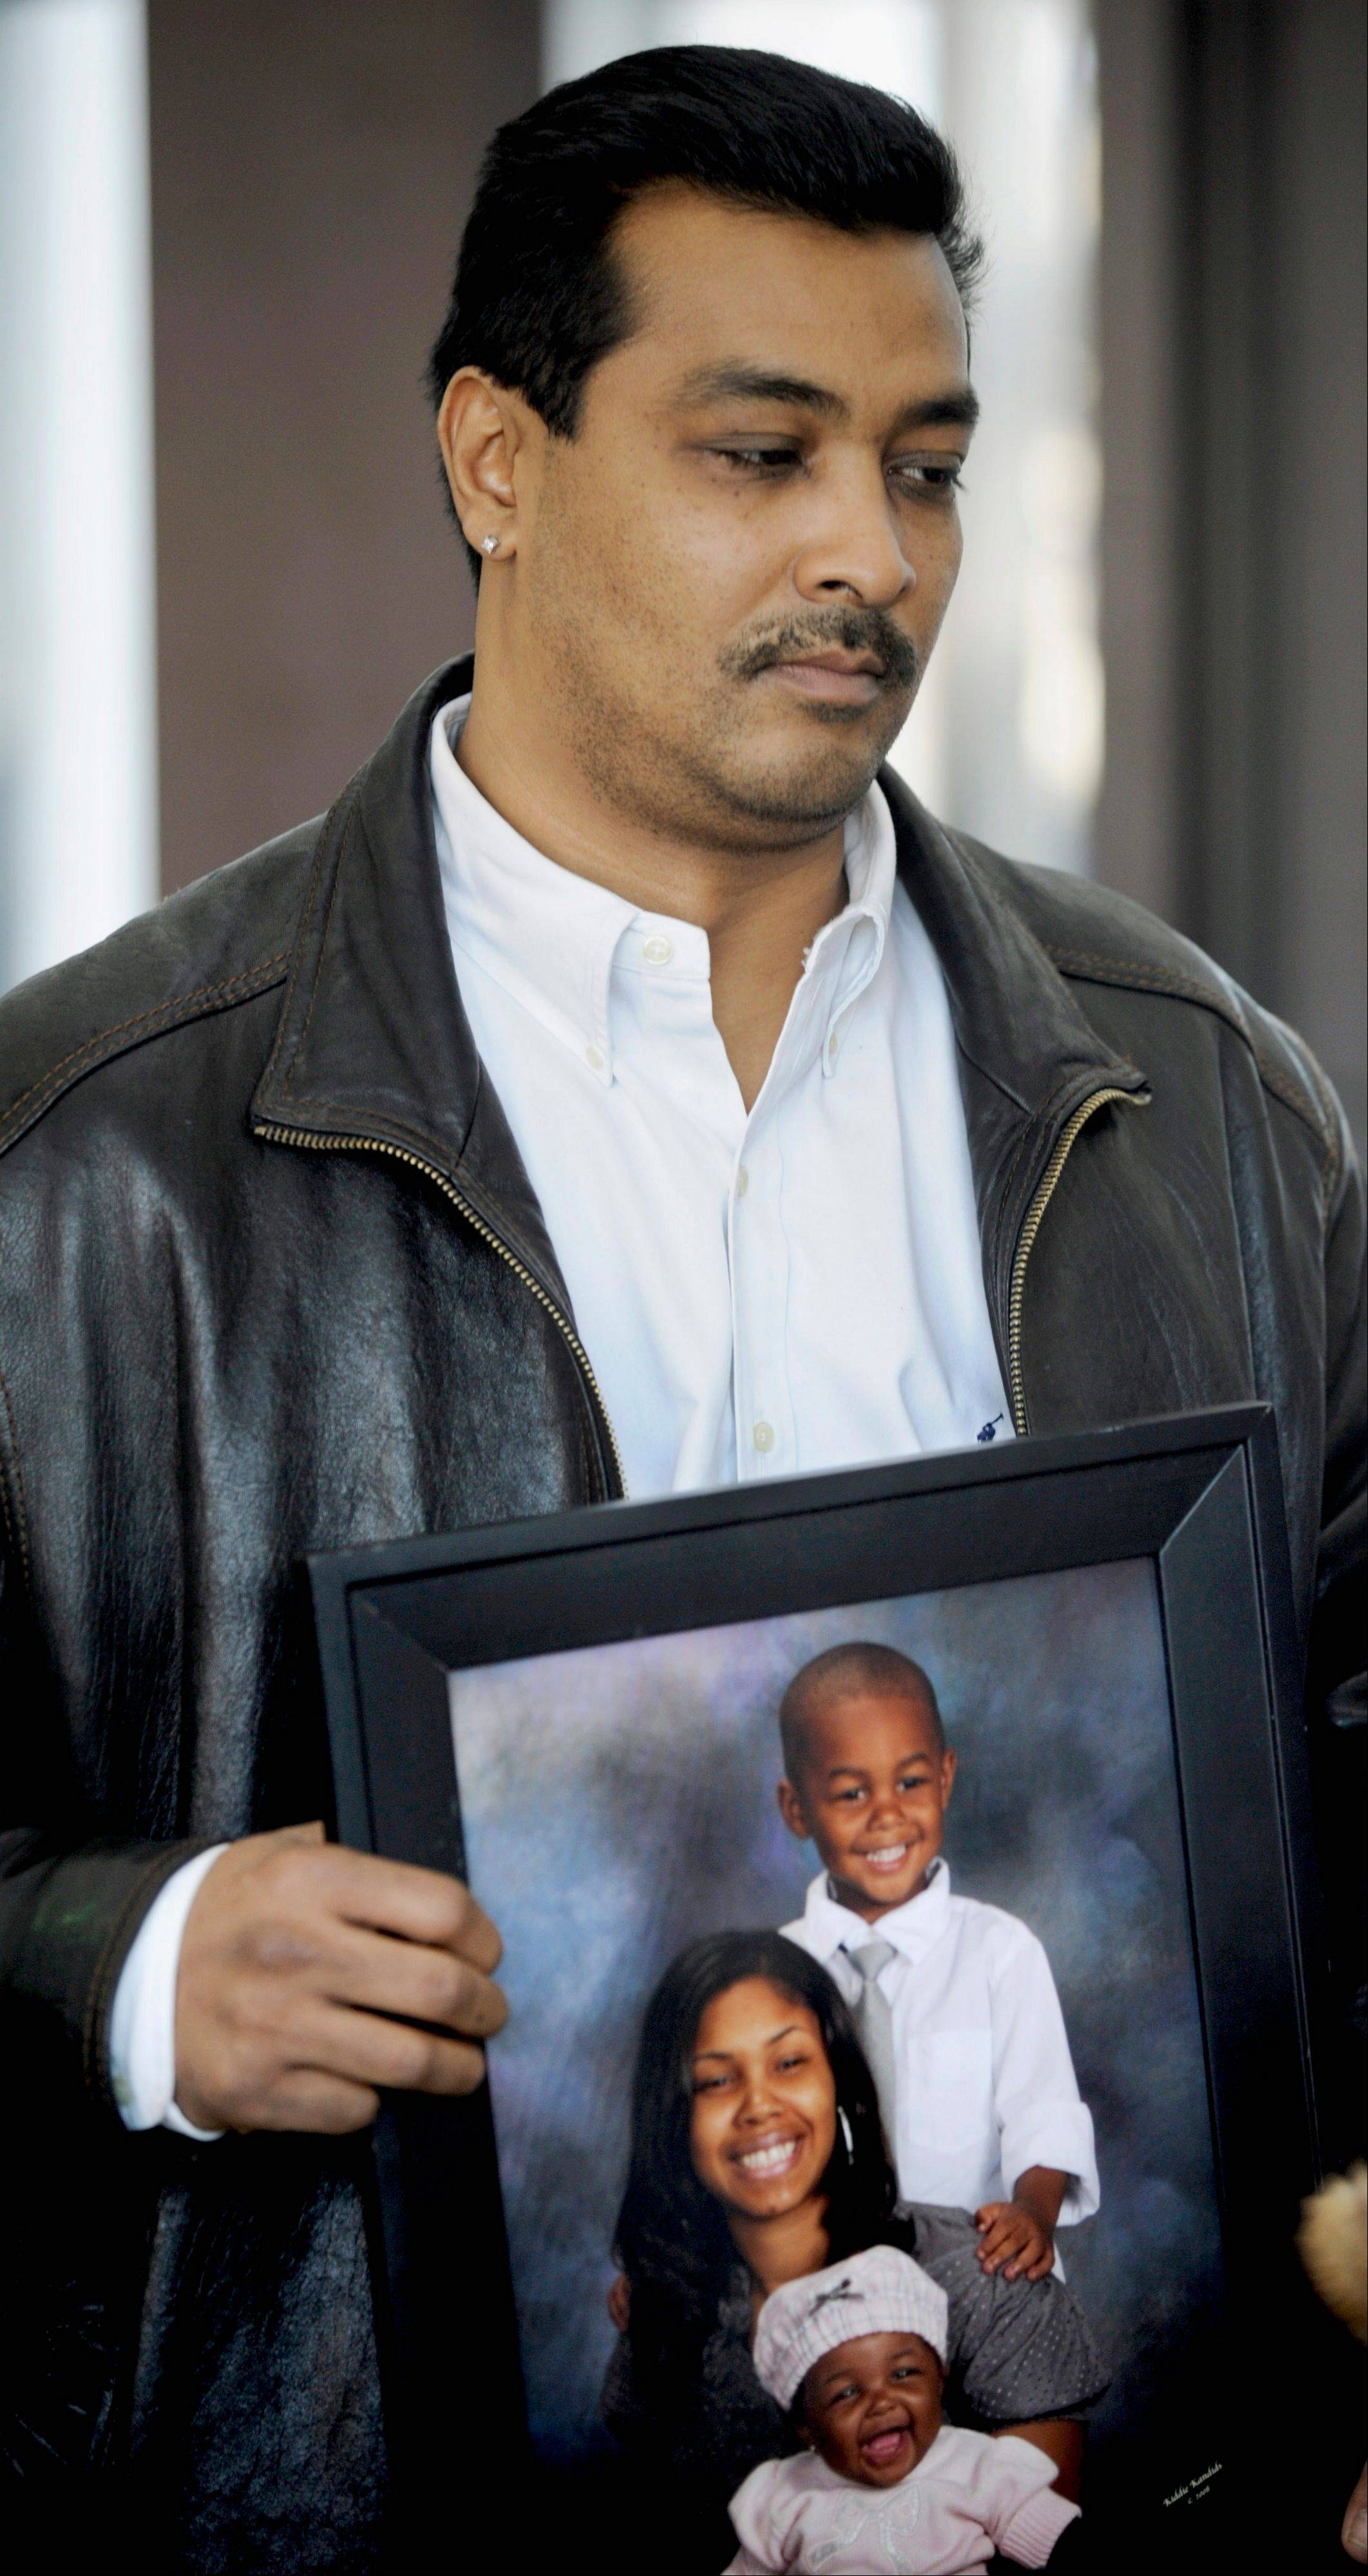 FILE - In this Feb. 23, 2009 file photo, Keith Henry holds a photo of his daughter Nova Henry, with her daughter Ava and son at the Cook County Courthouse in Chicago. Chicago attorney Fredrick Goings, who was convicted in the January 2009 slayings of Nova and daughter Ava, the ex-girlfriend and daughter of former NBA center Eddy Curry, was sentenced Thursday, April 4, 2013, to life in prison. Goings represented Henry in a child custody case against Curry, and was romantically involved with her.